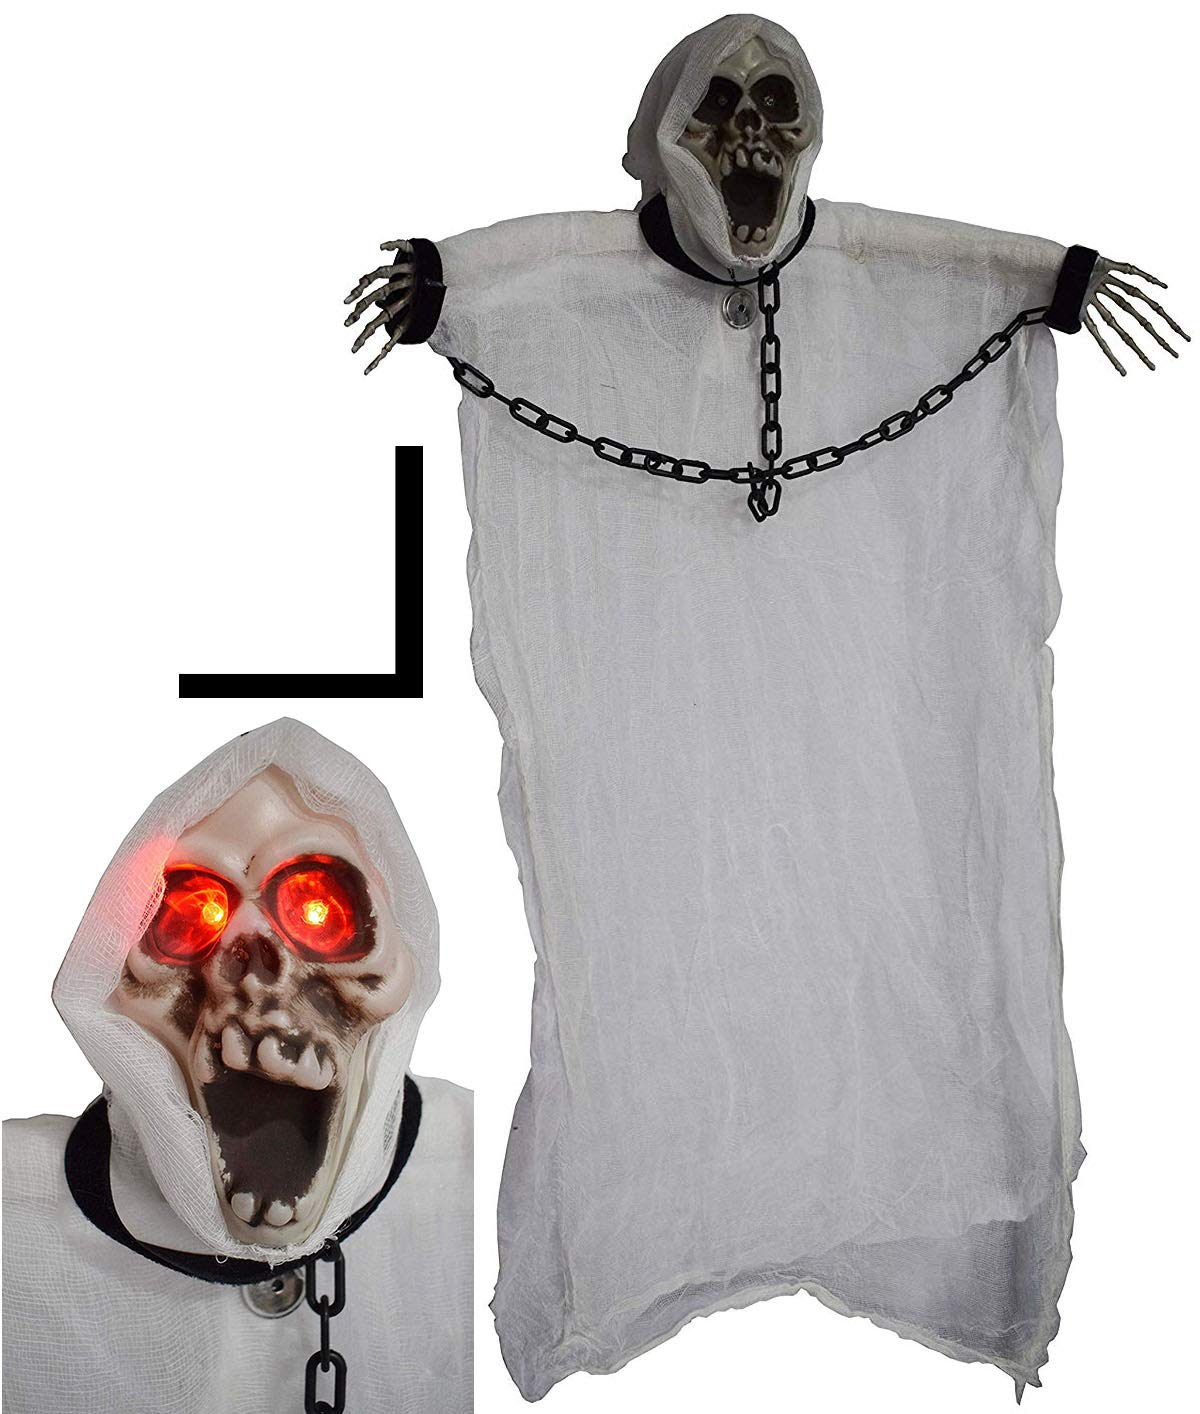 4E's Novelty Spooky Hanging White Ghost, Scary Skeleton Prop, Halloween Horror Scene Props Decorations, with LED & Sounds of Witches in The Hell, 3 Ft.